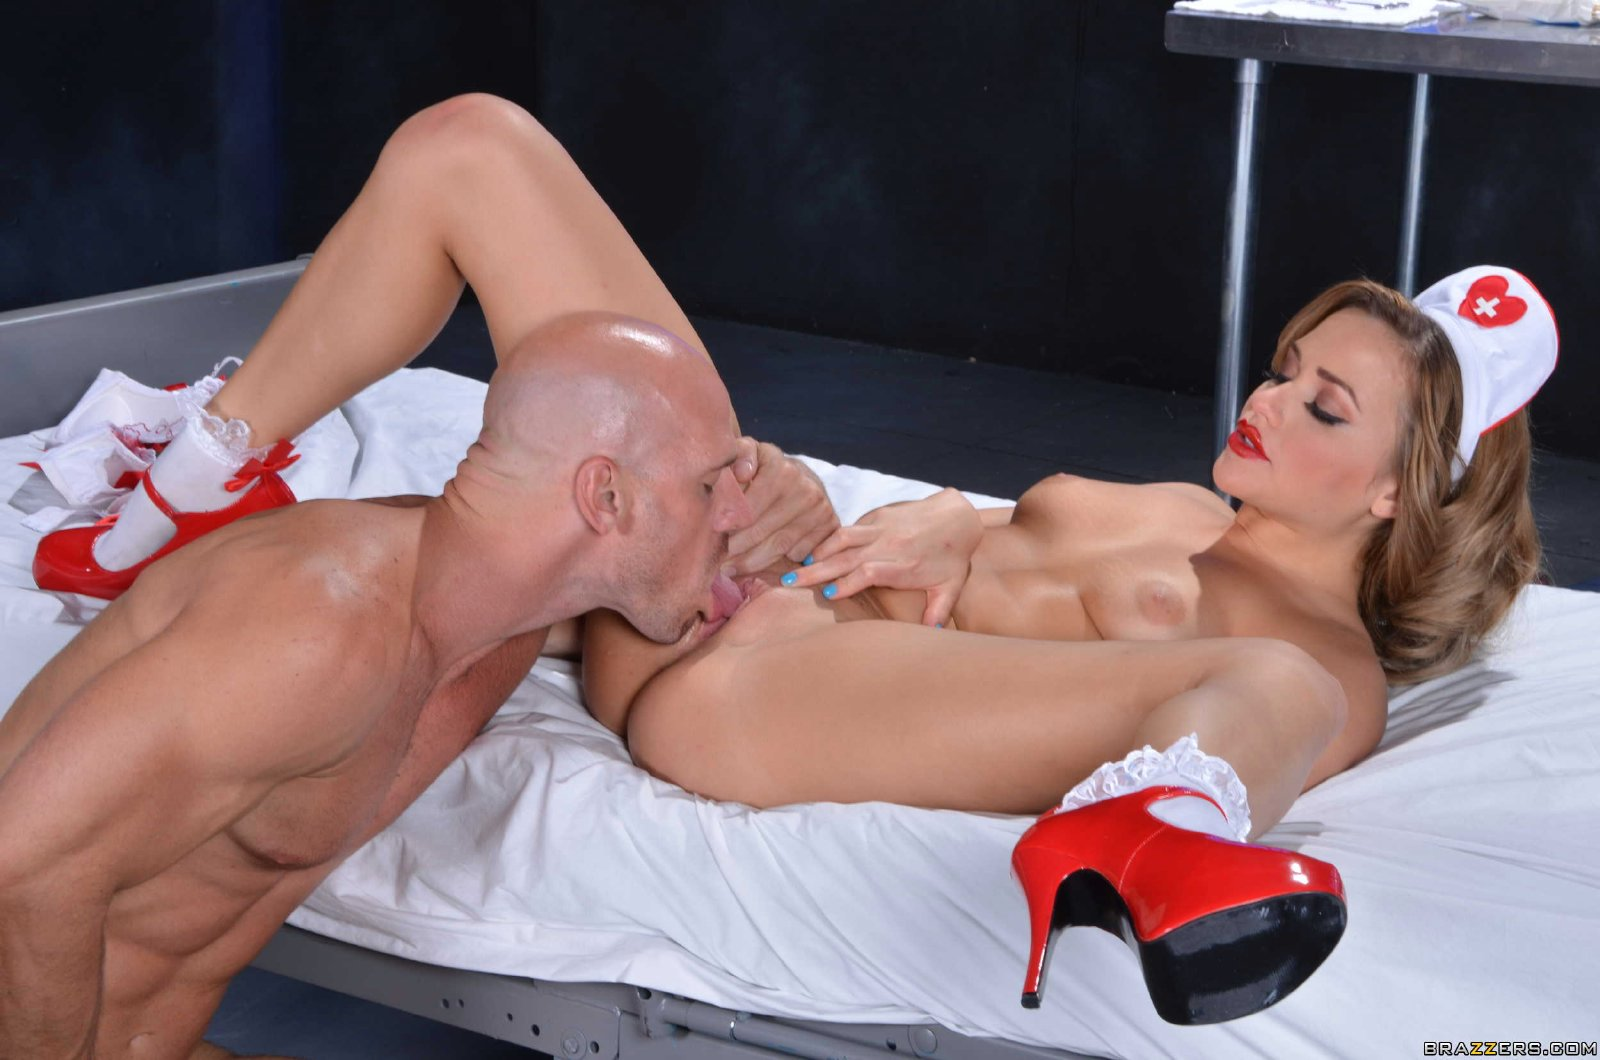 Hot blonde riding the best she can 4